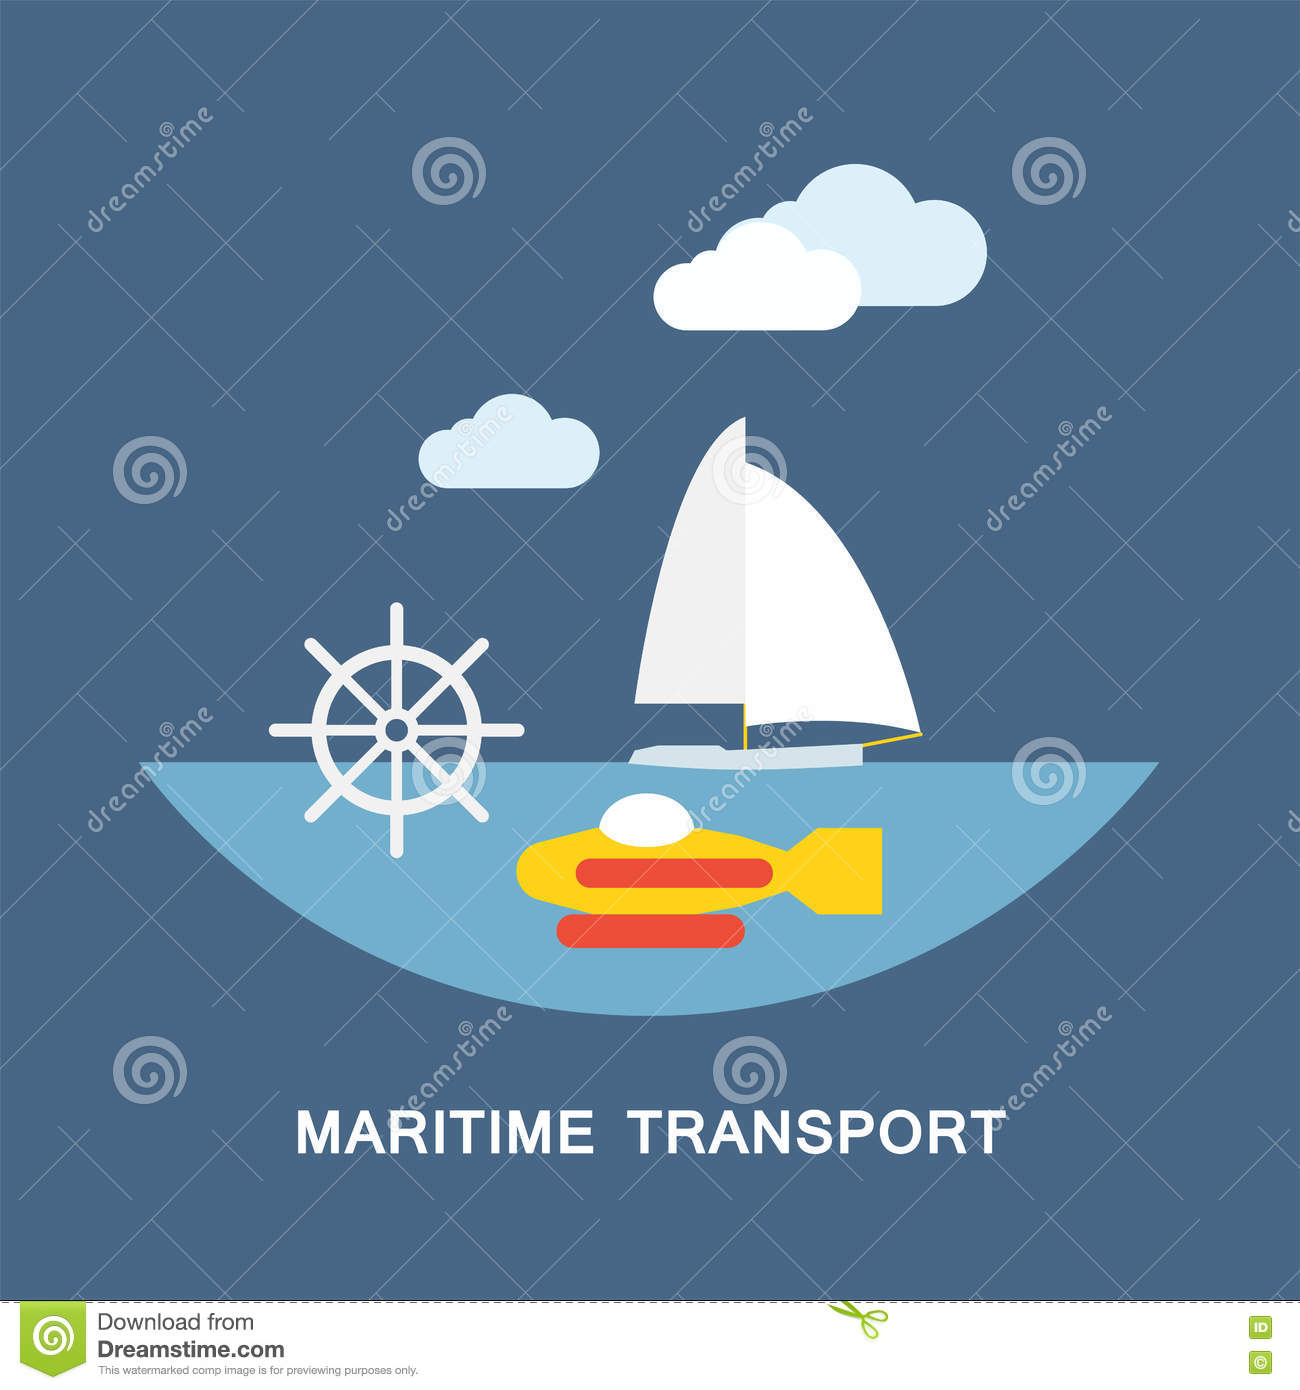 Is maritime transportation losing out its